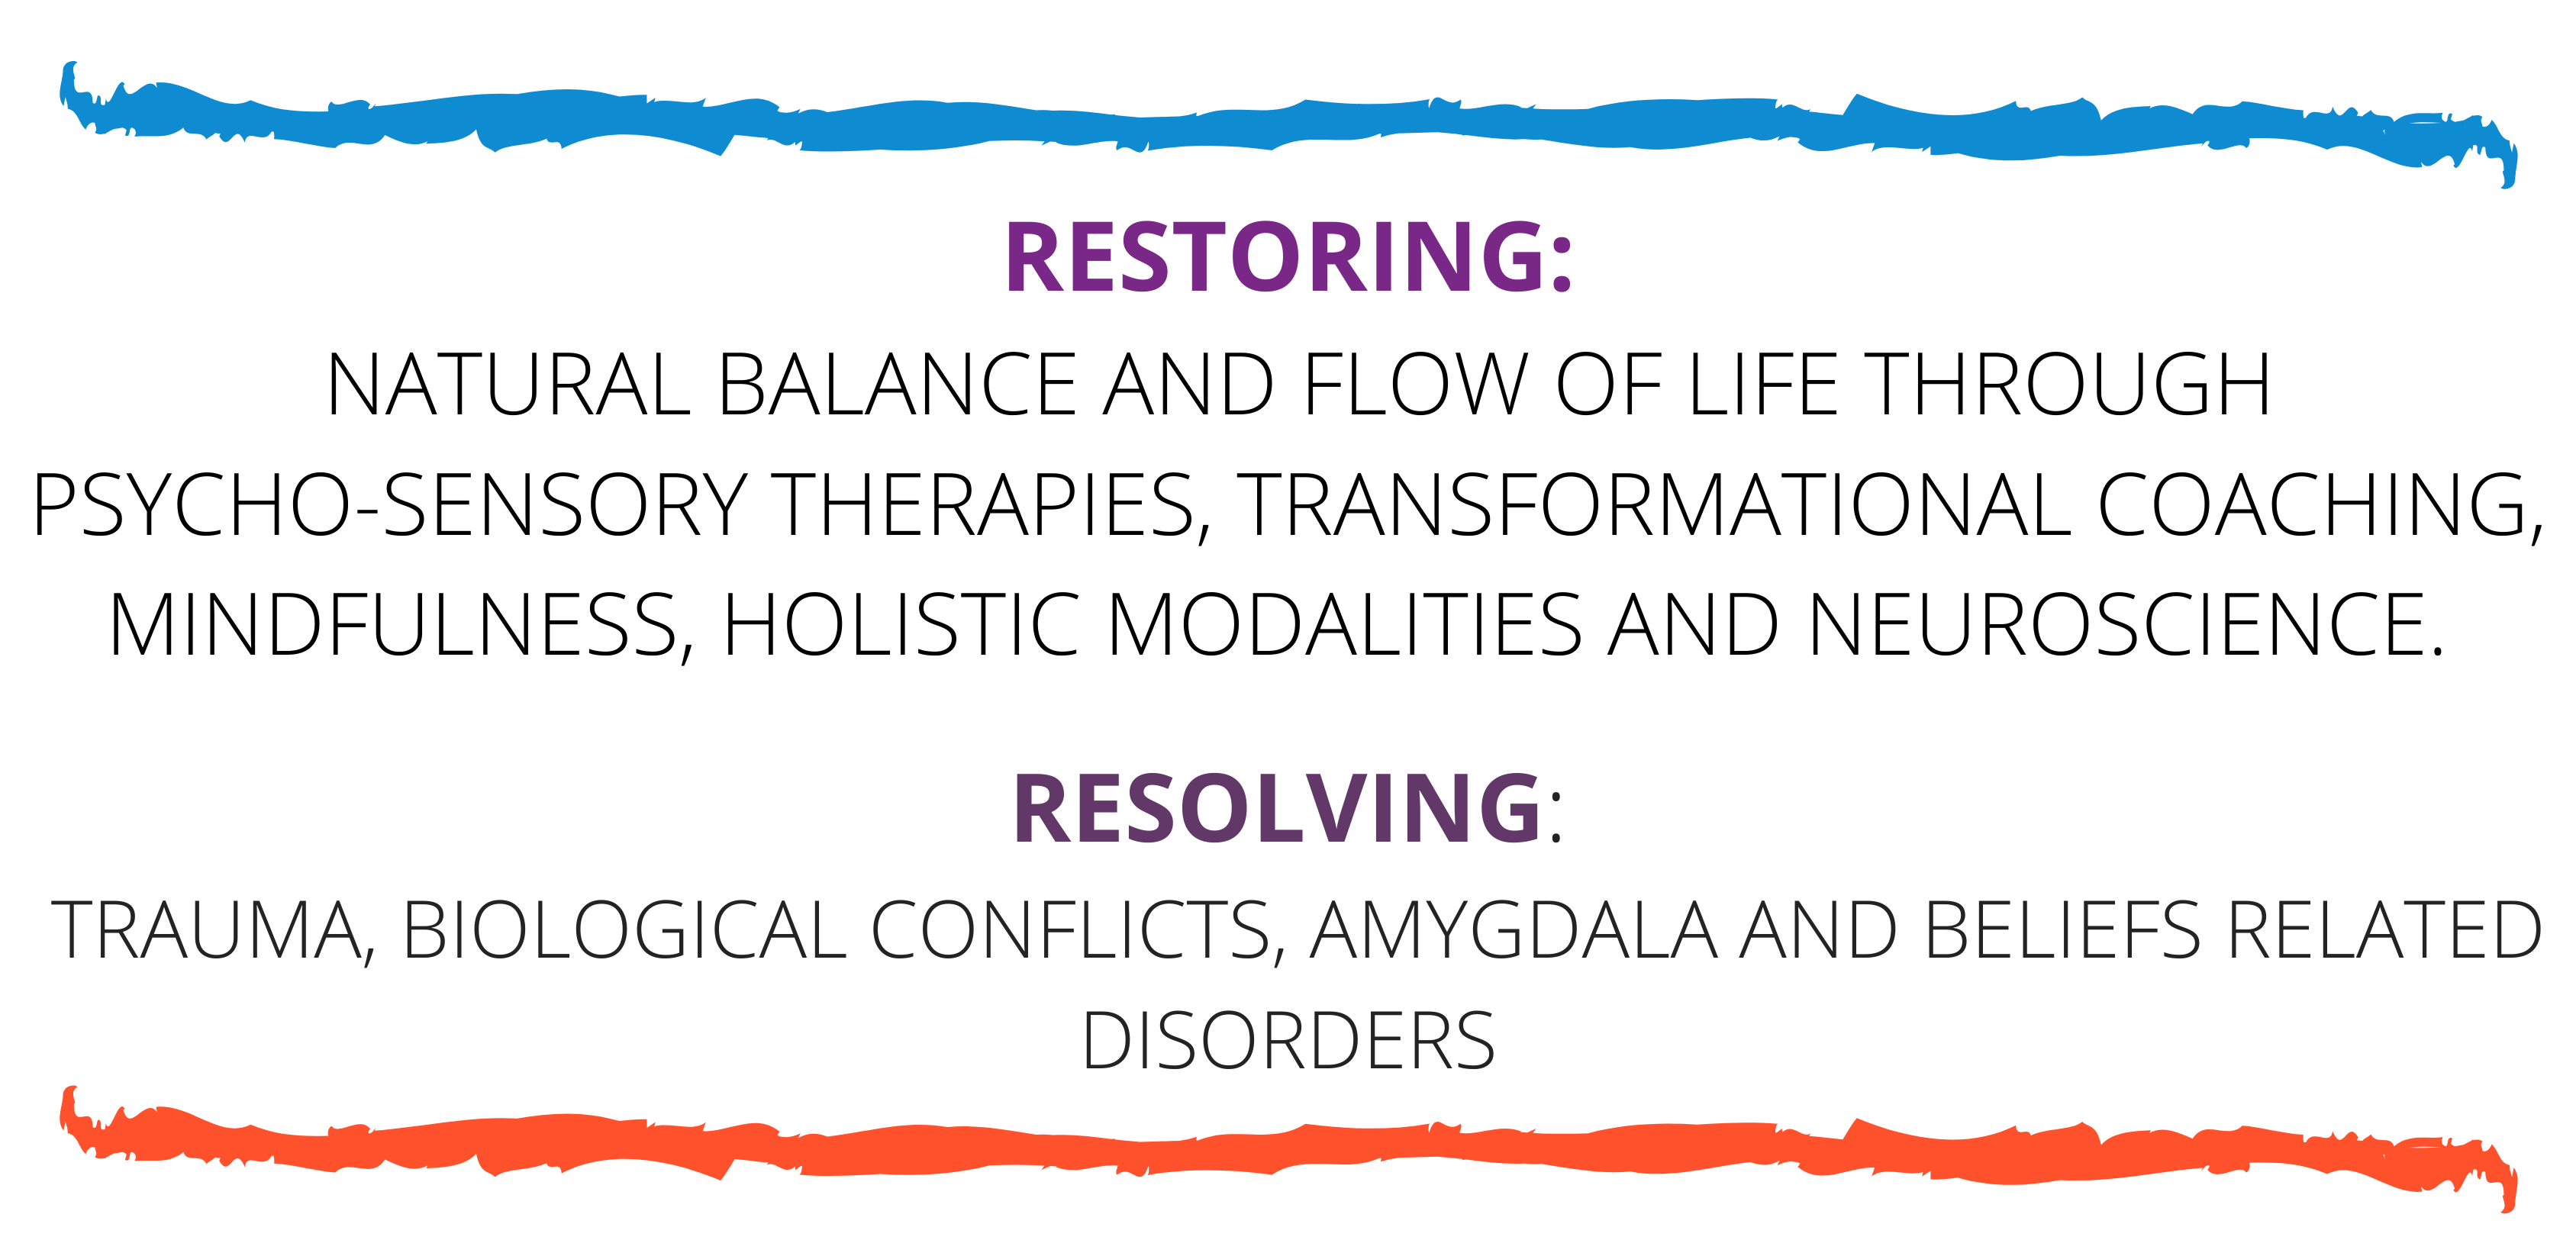 removing-obstacles-to-safety-and-balance-through-psychosensory-techniques-holistic-modalities-and-neurosciences-1